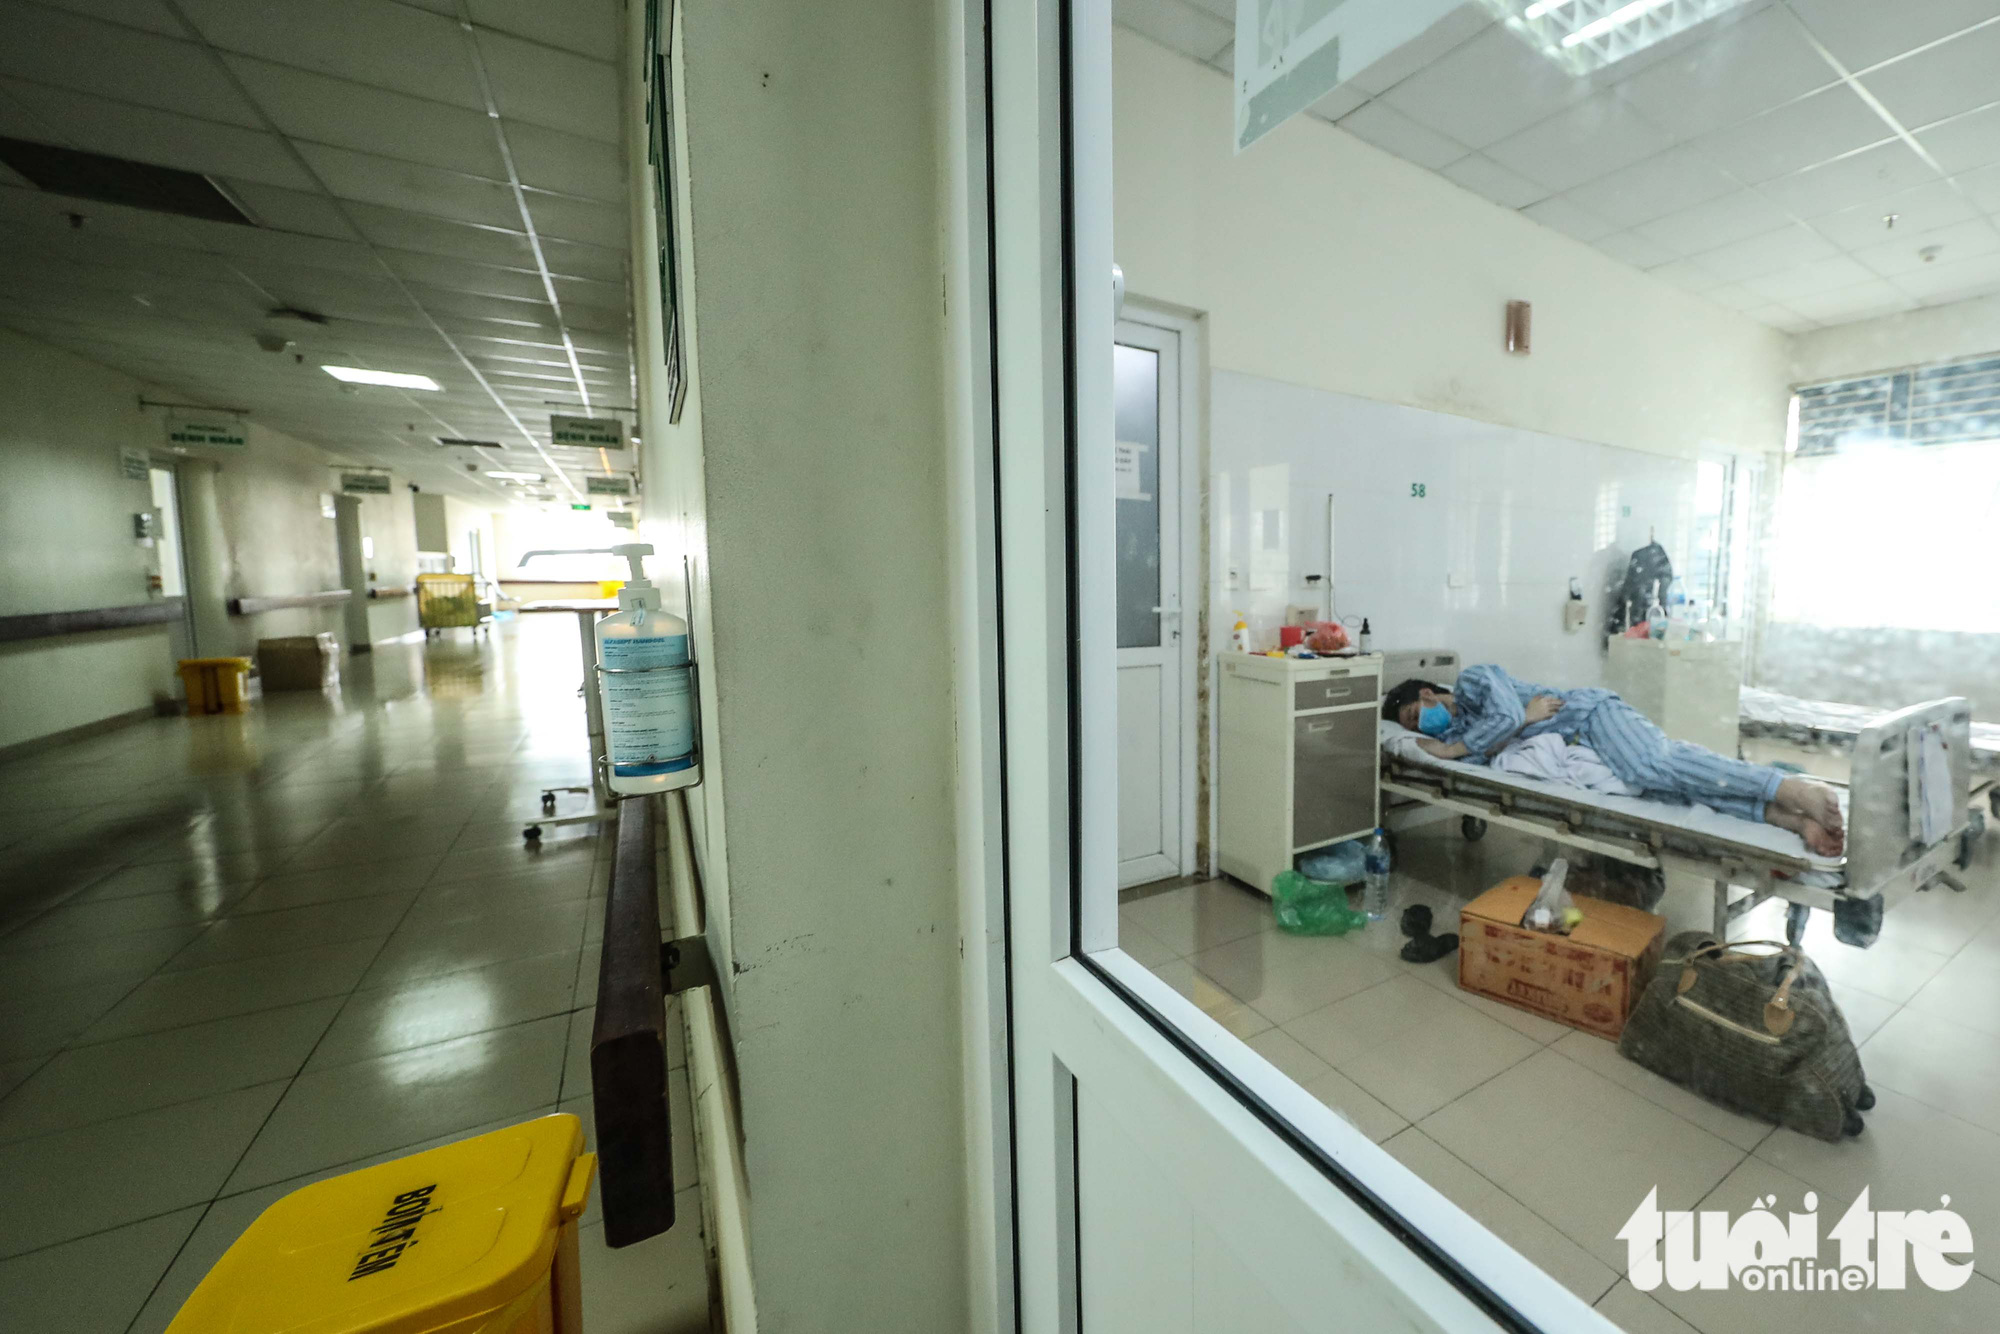 People with high risk of infection are quarantined at the National Hospital for Tropical Diseases in Dong Anh District in Hanoi, Vietnam. Photo: Nguyen Khanh / Tuoi Tre